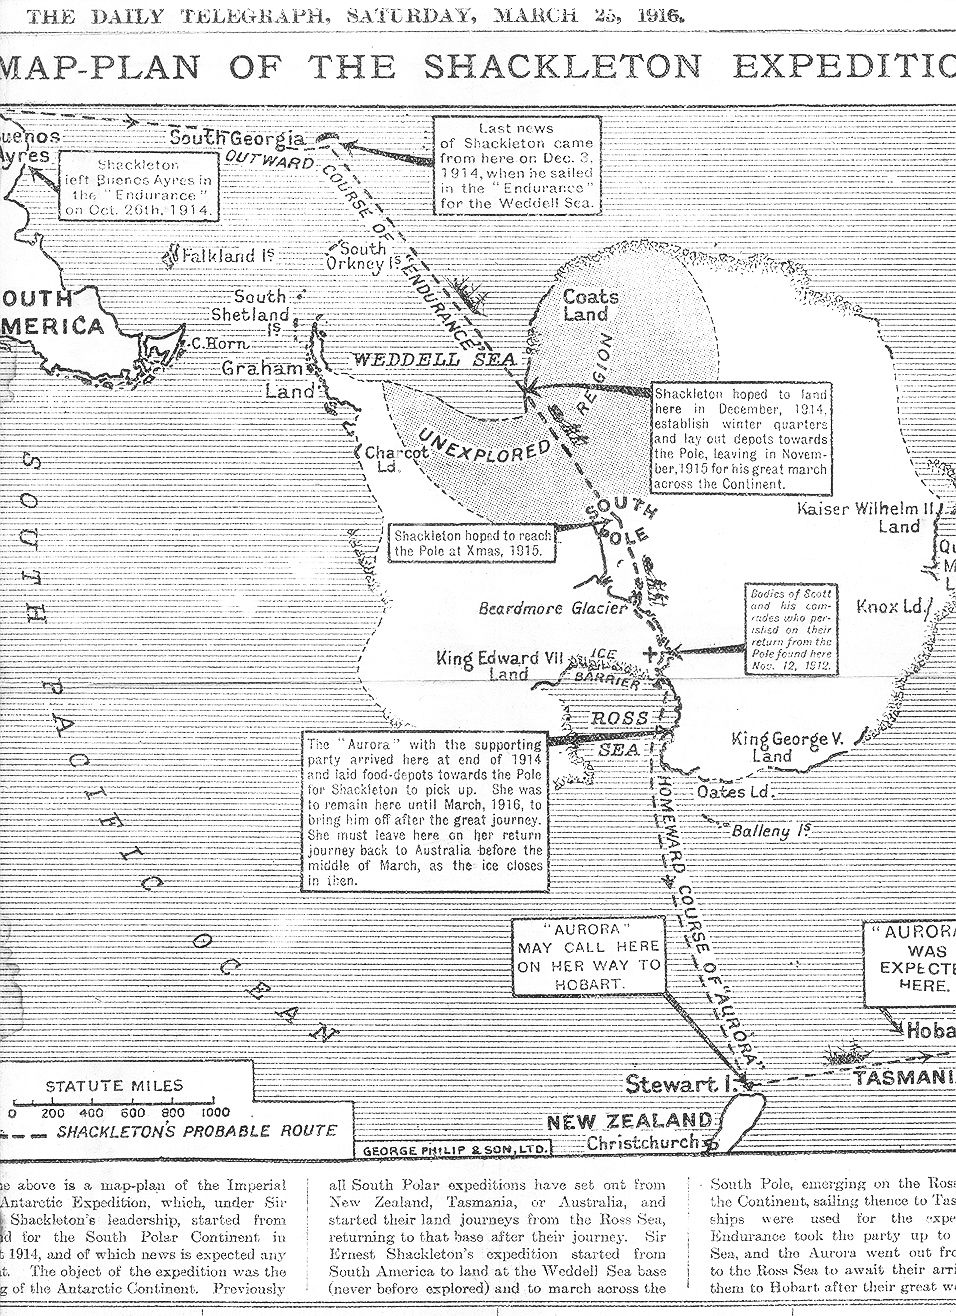 File:Shackleton Expedition map-plan.jpg